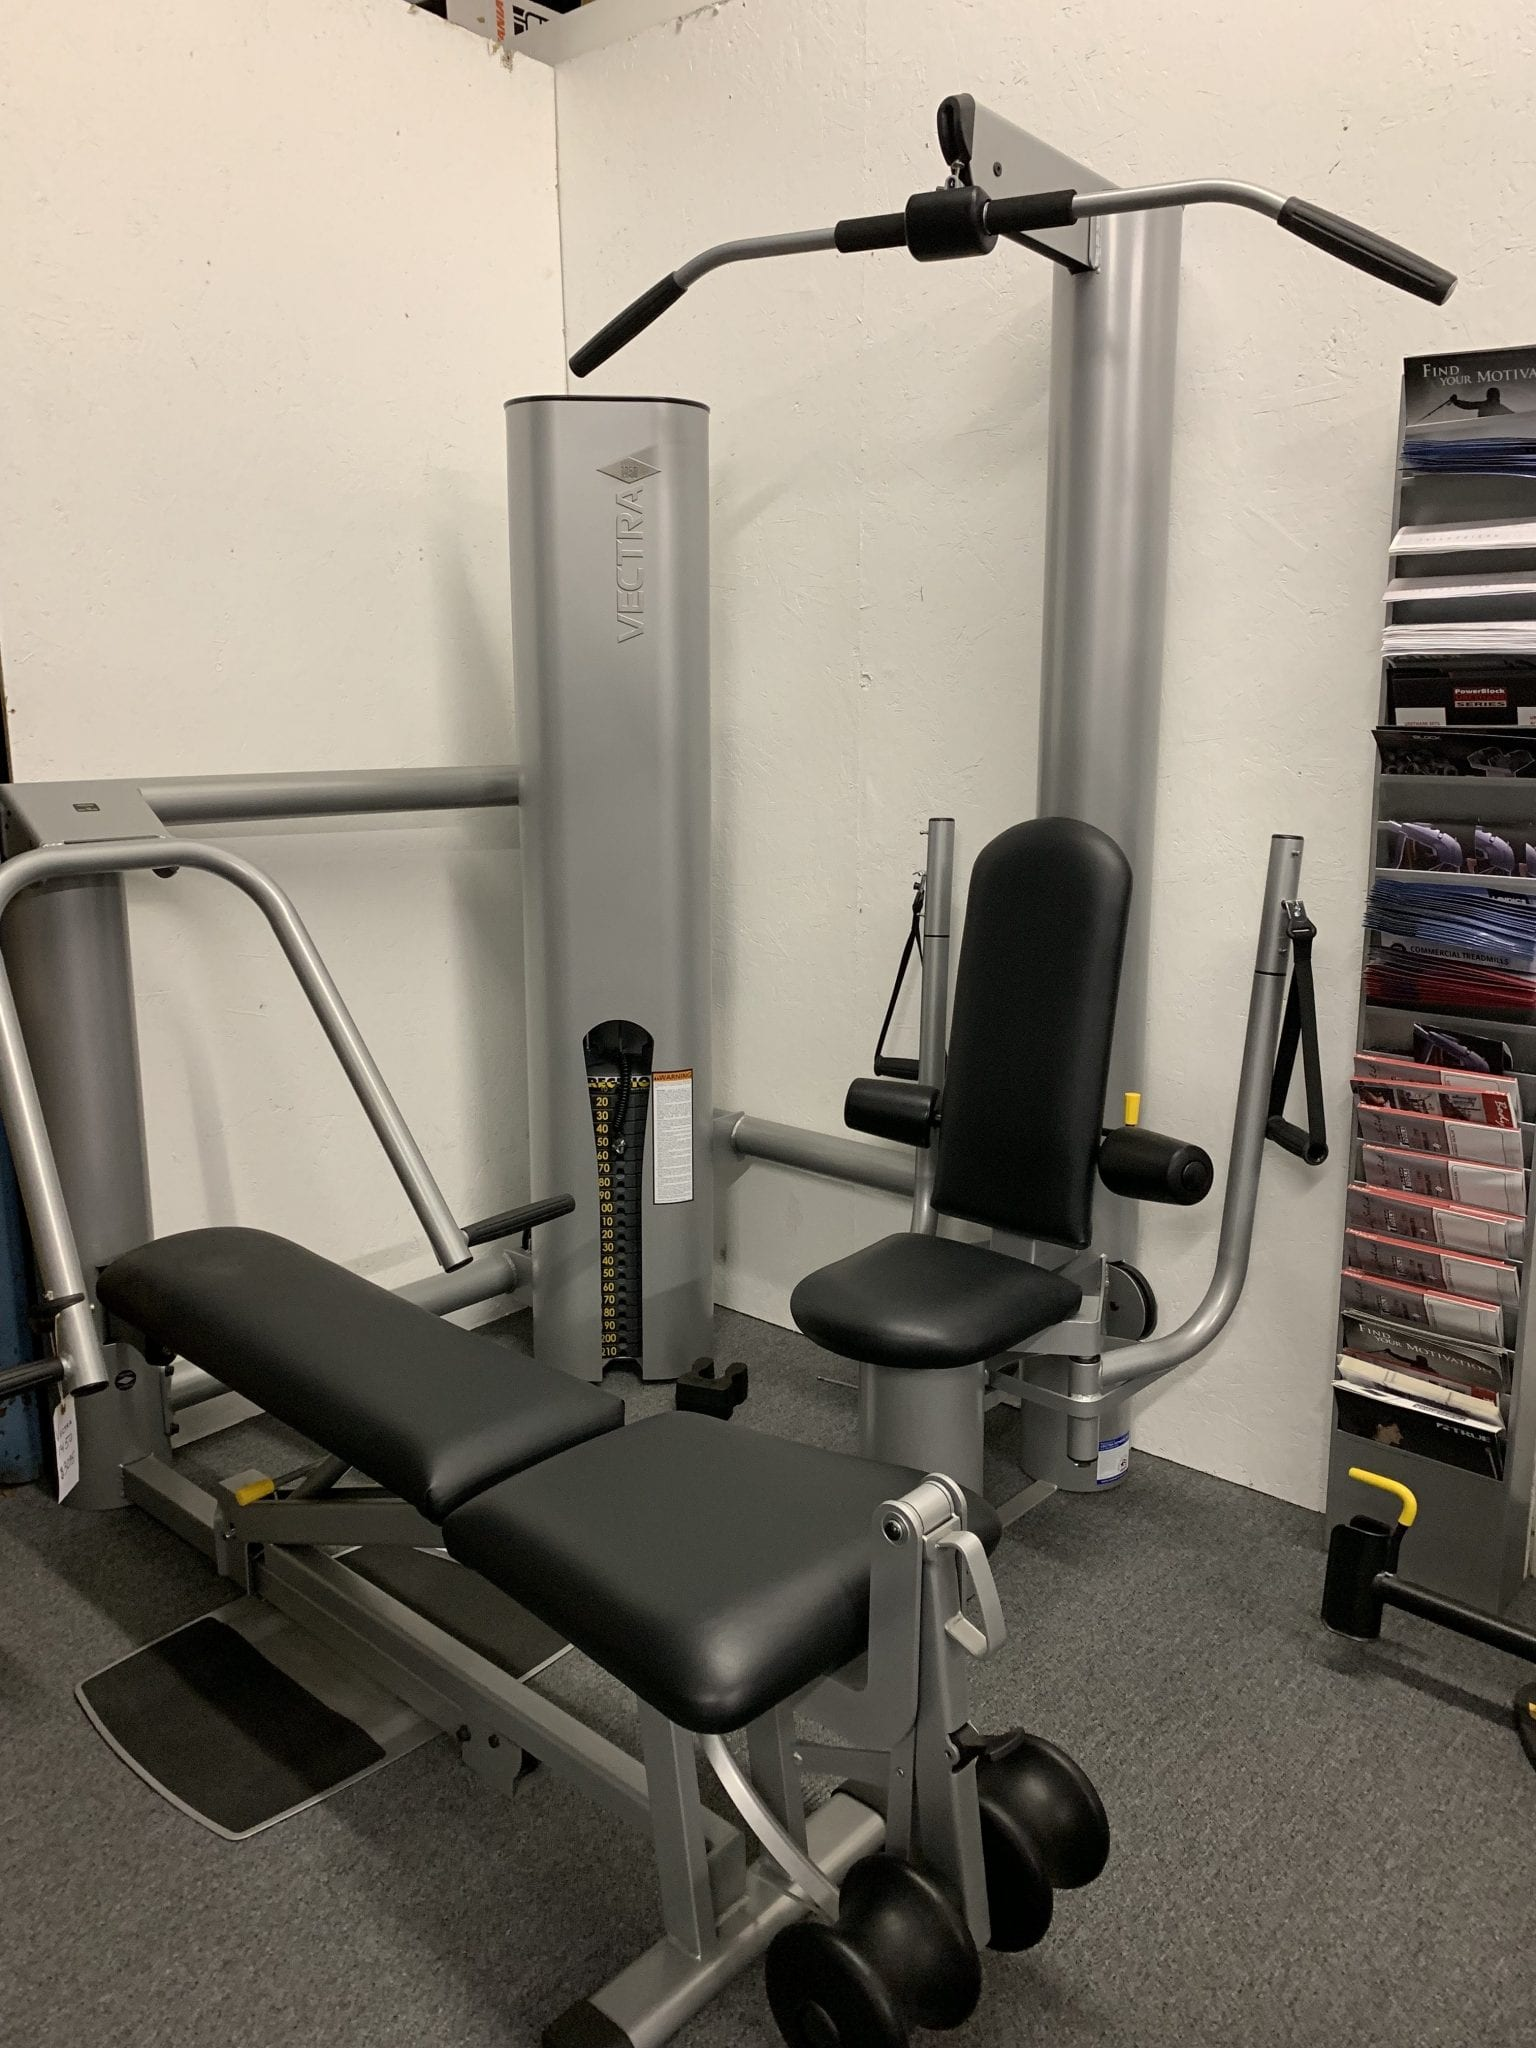 Vectra fitness on line 1450 home gym floor model fitness